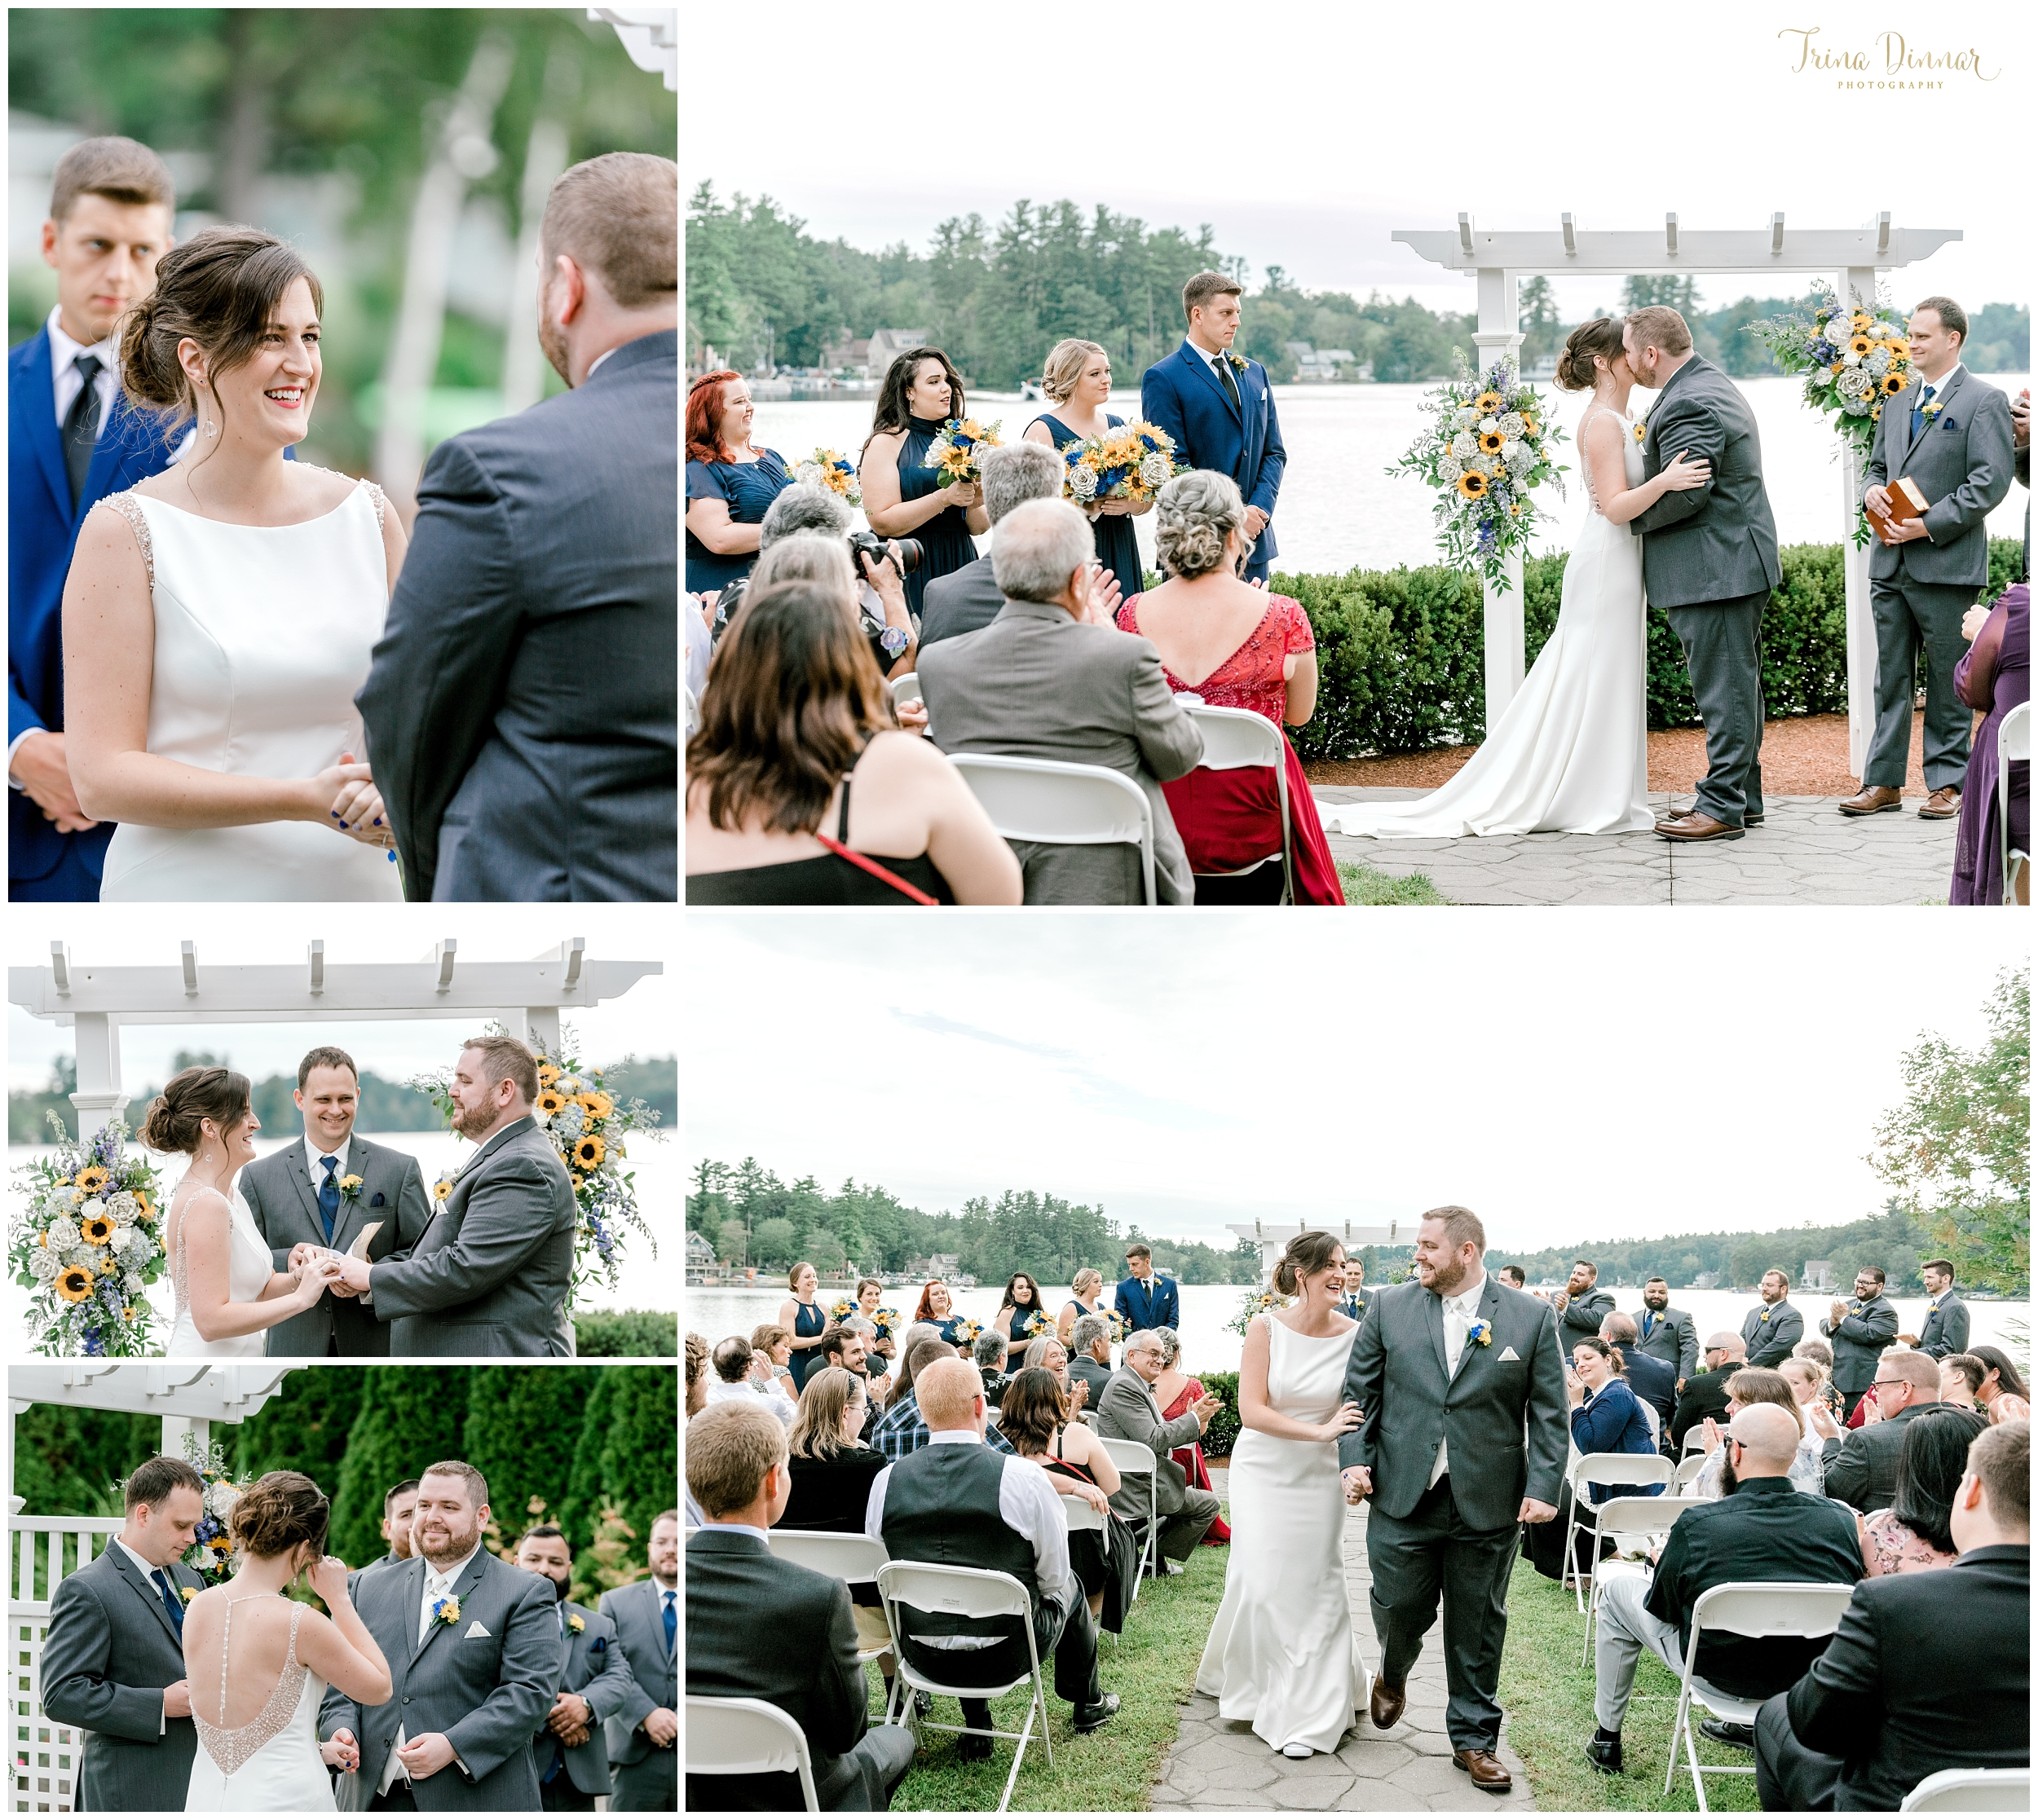 Erica and Alex's Castleton Wedding Ceremony in Windham NH.